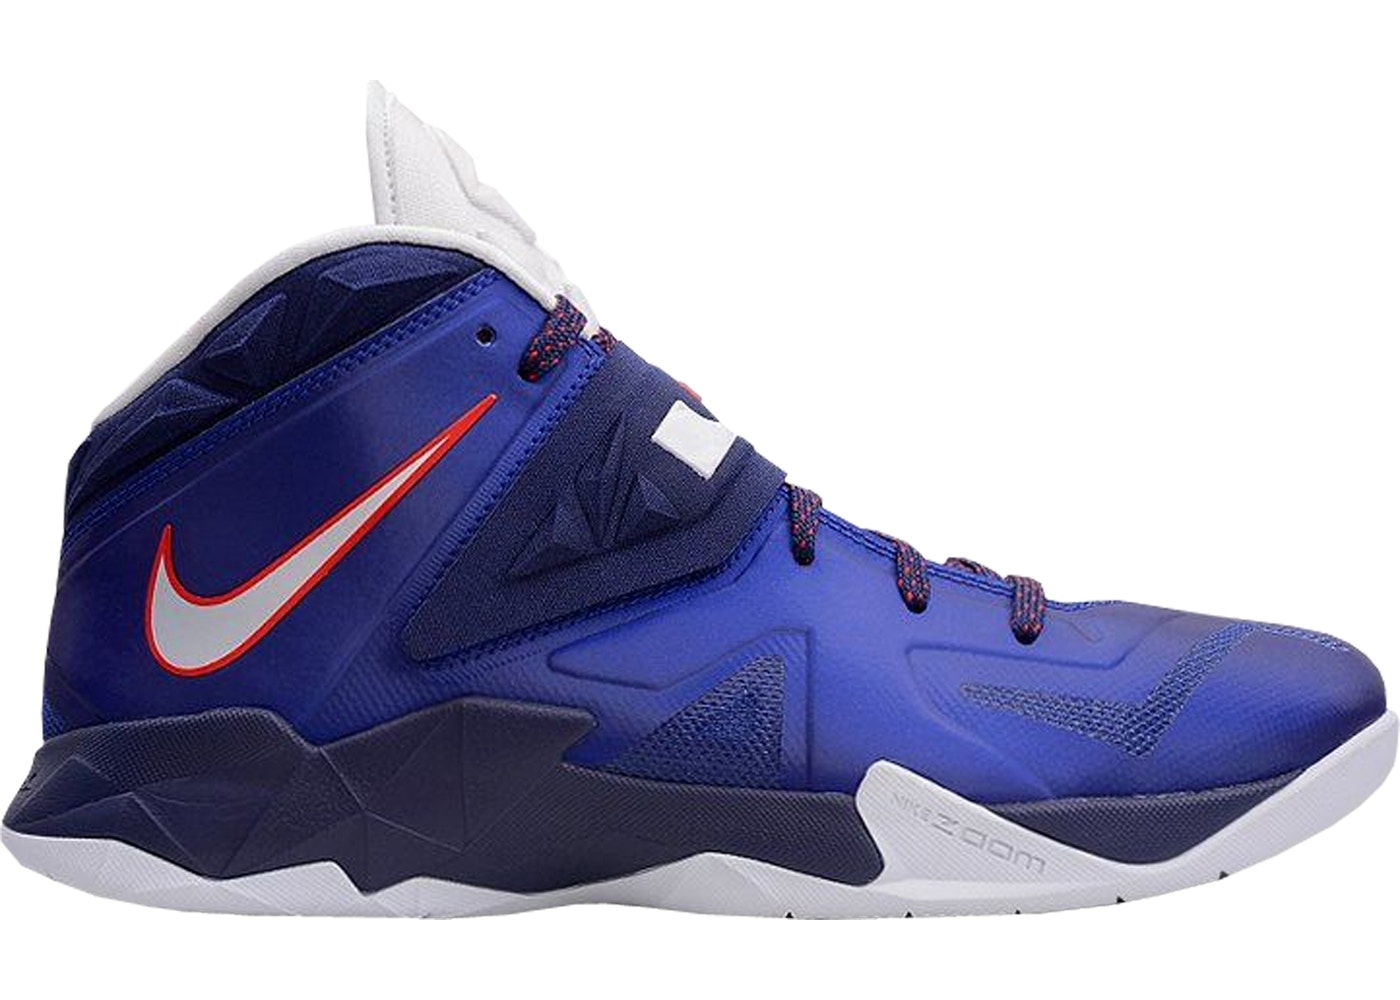 new style e3354 1c338 ... LeBron Zoom Soldier 7 Deep Royal Blue .